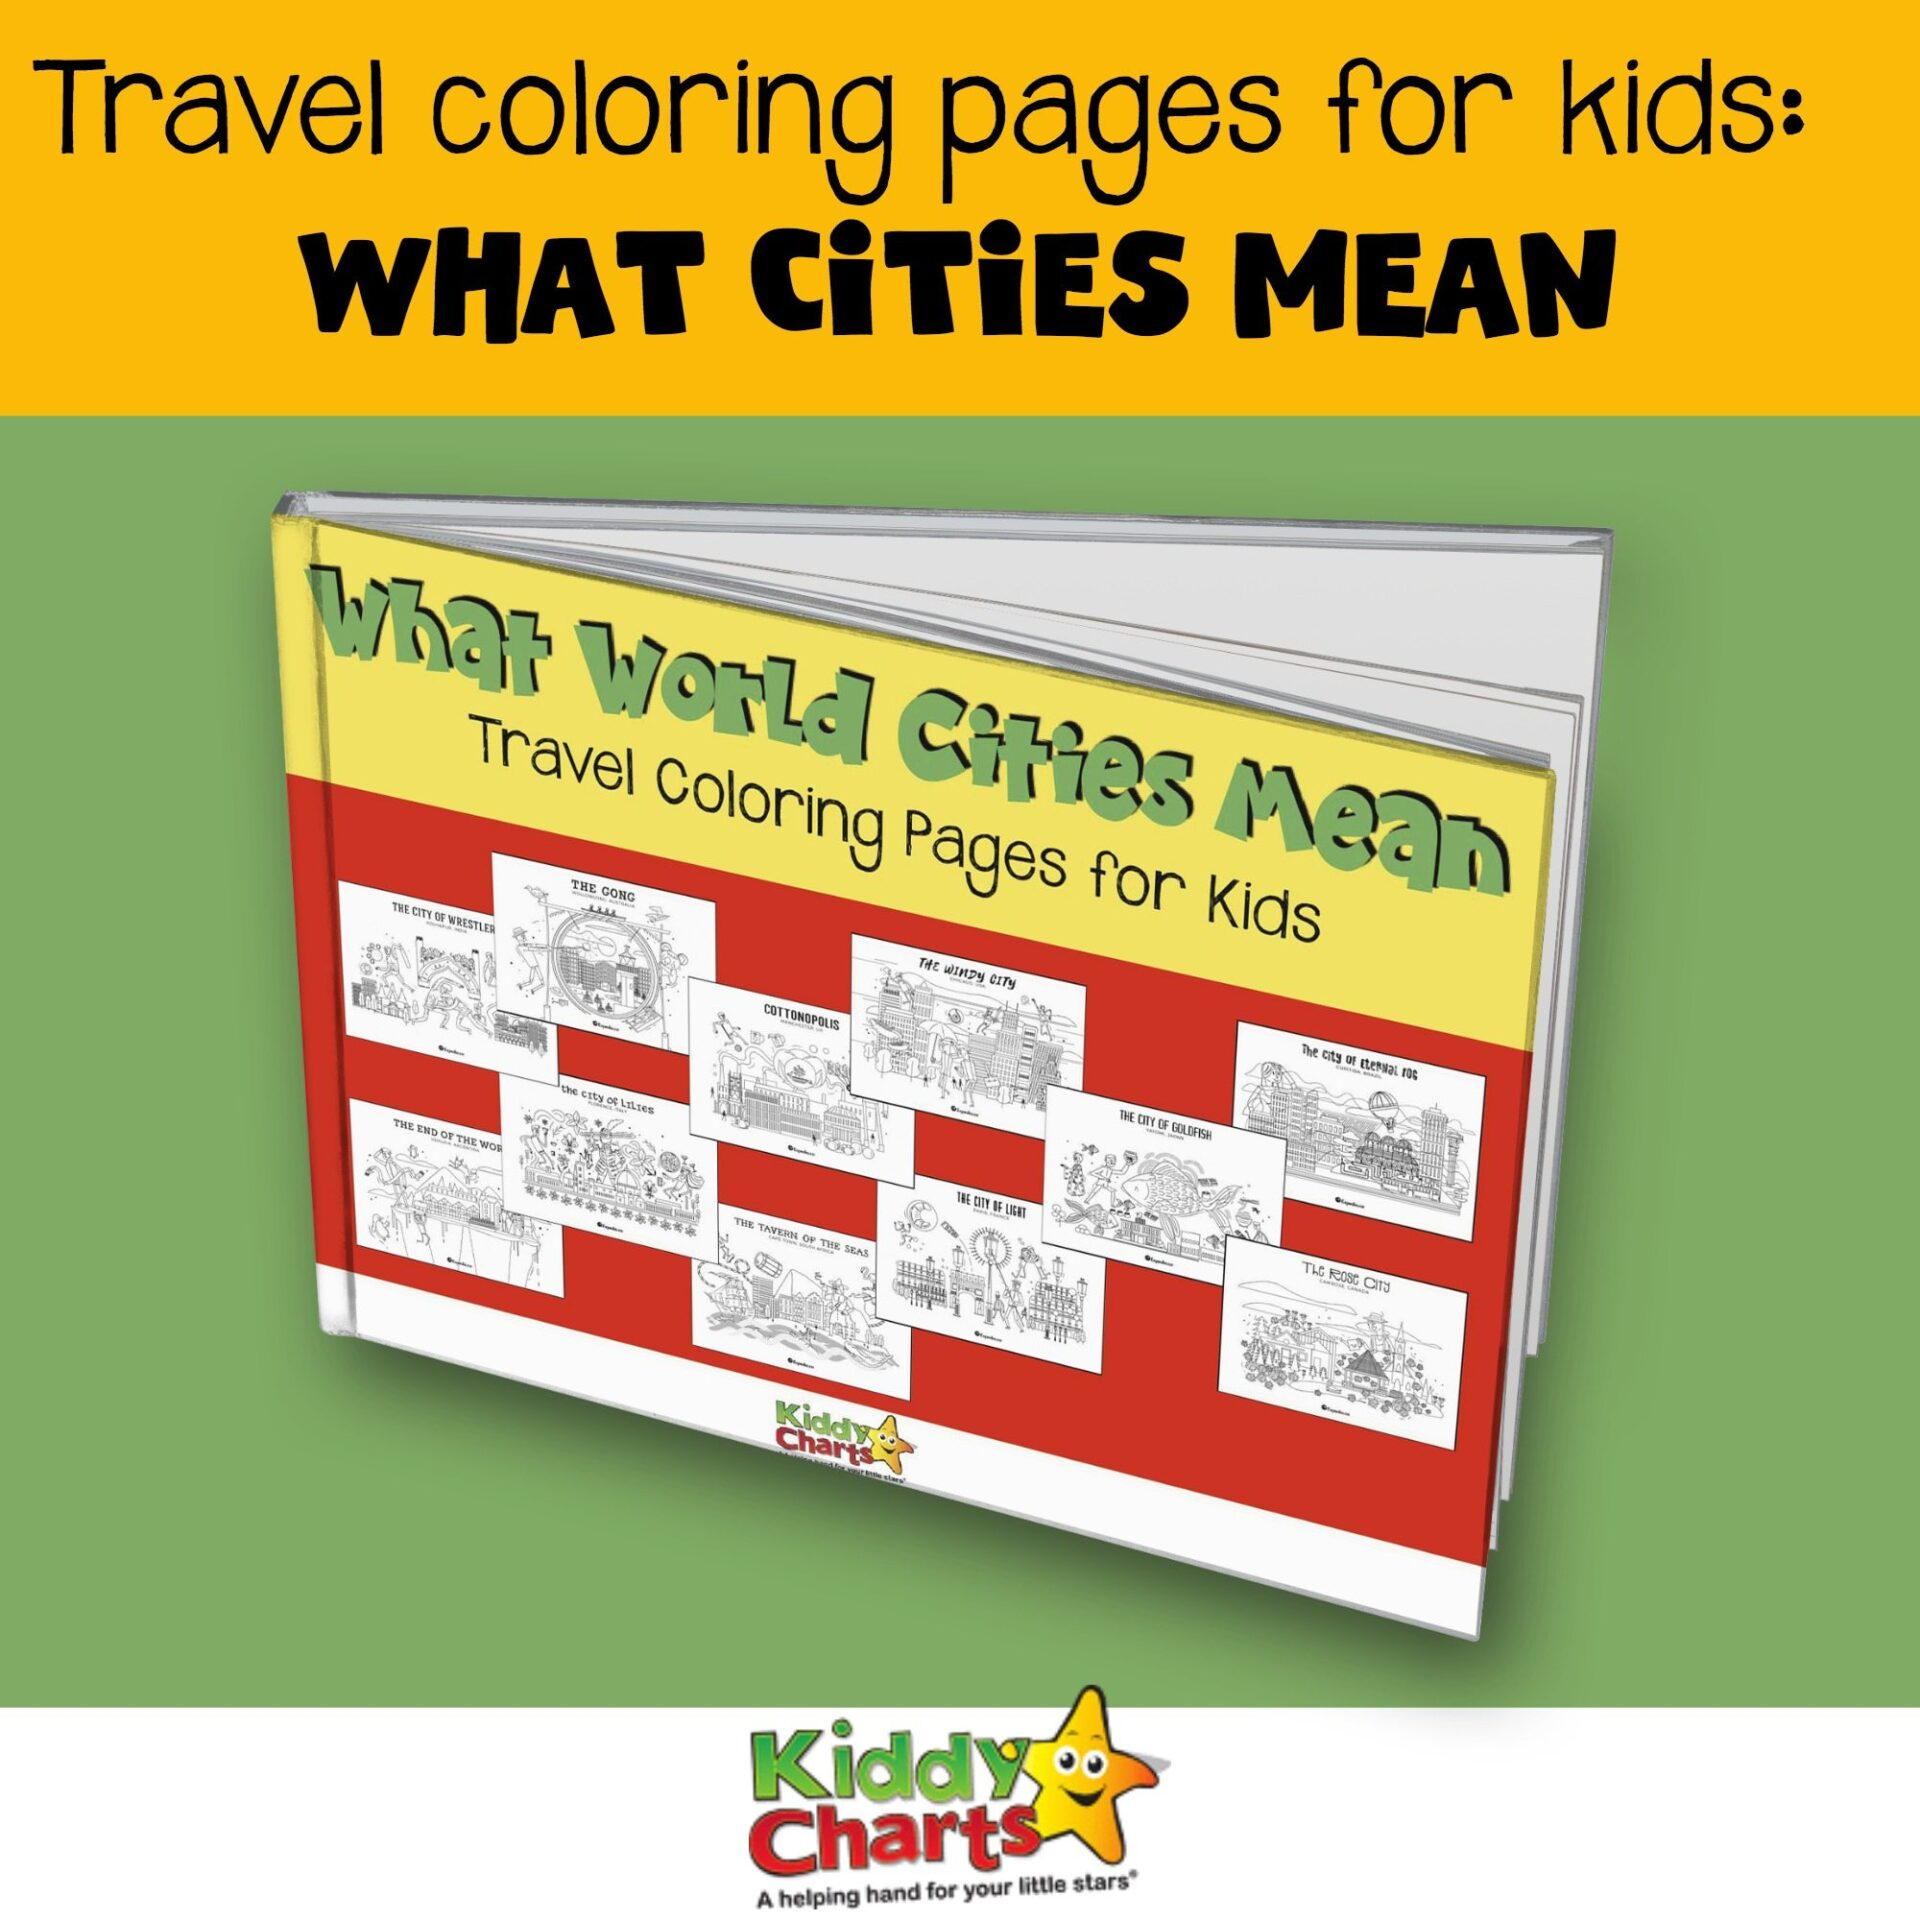 I would like to share Travel Coloring Pages for Kids that hopefully will help people to gain knowledge about places around the world.